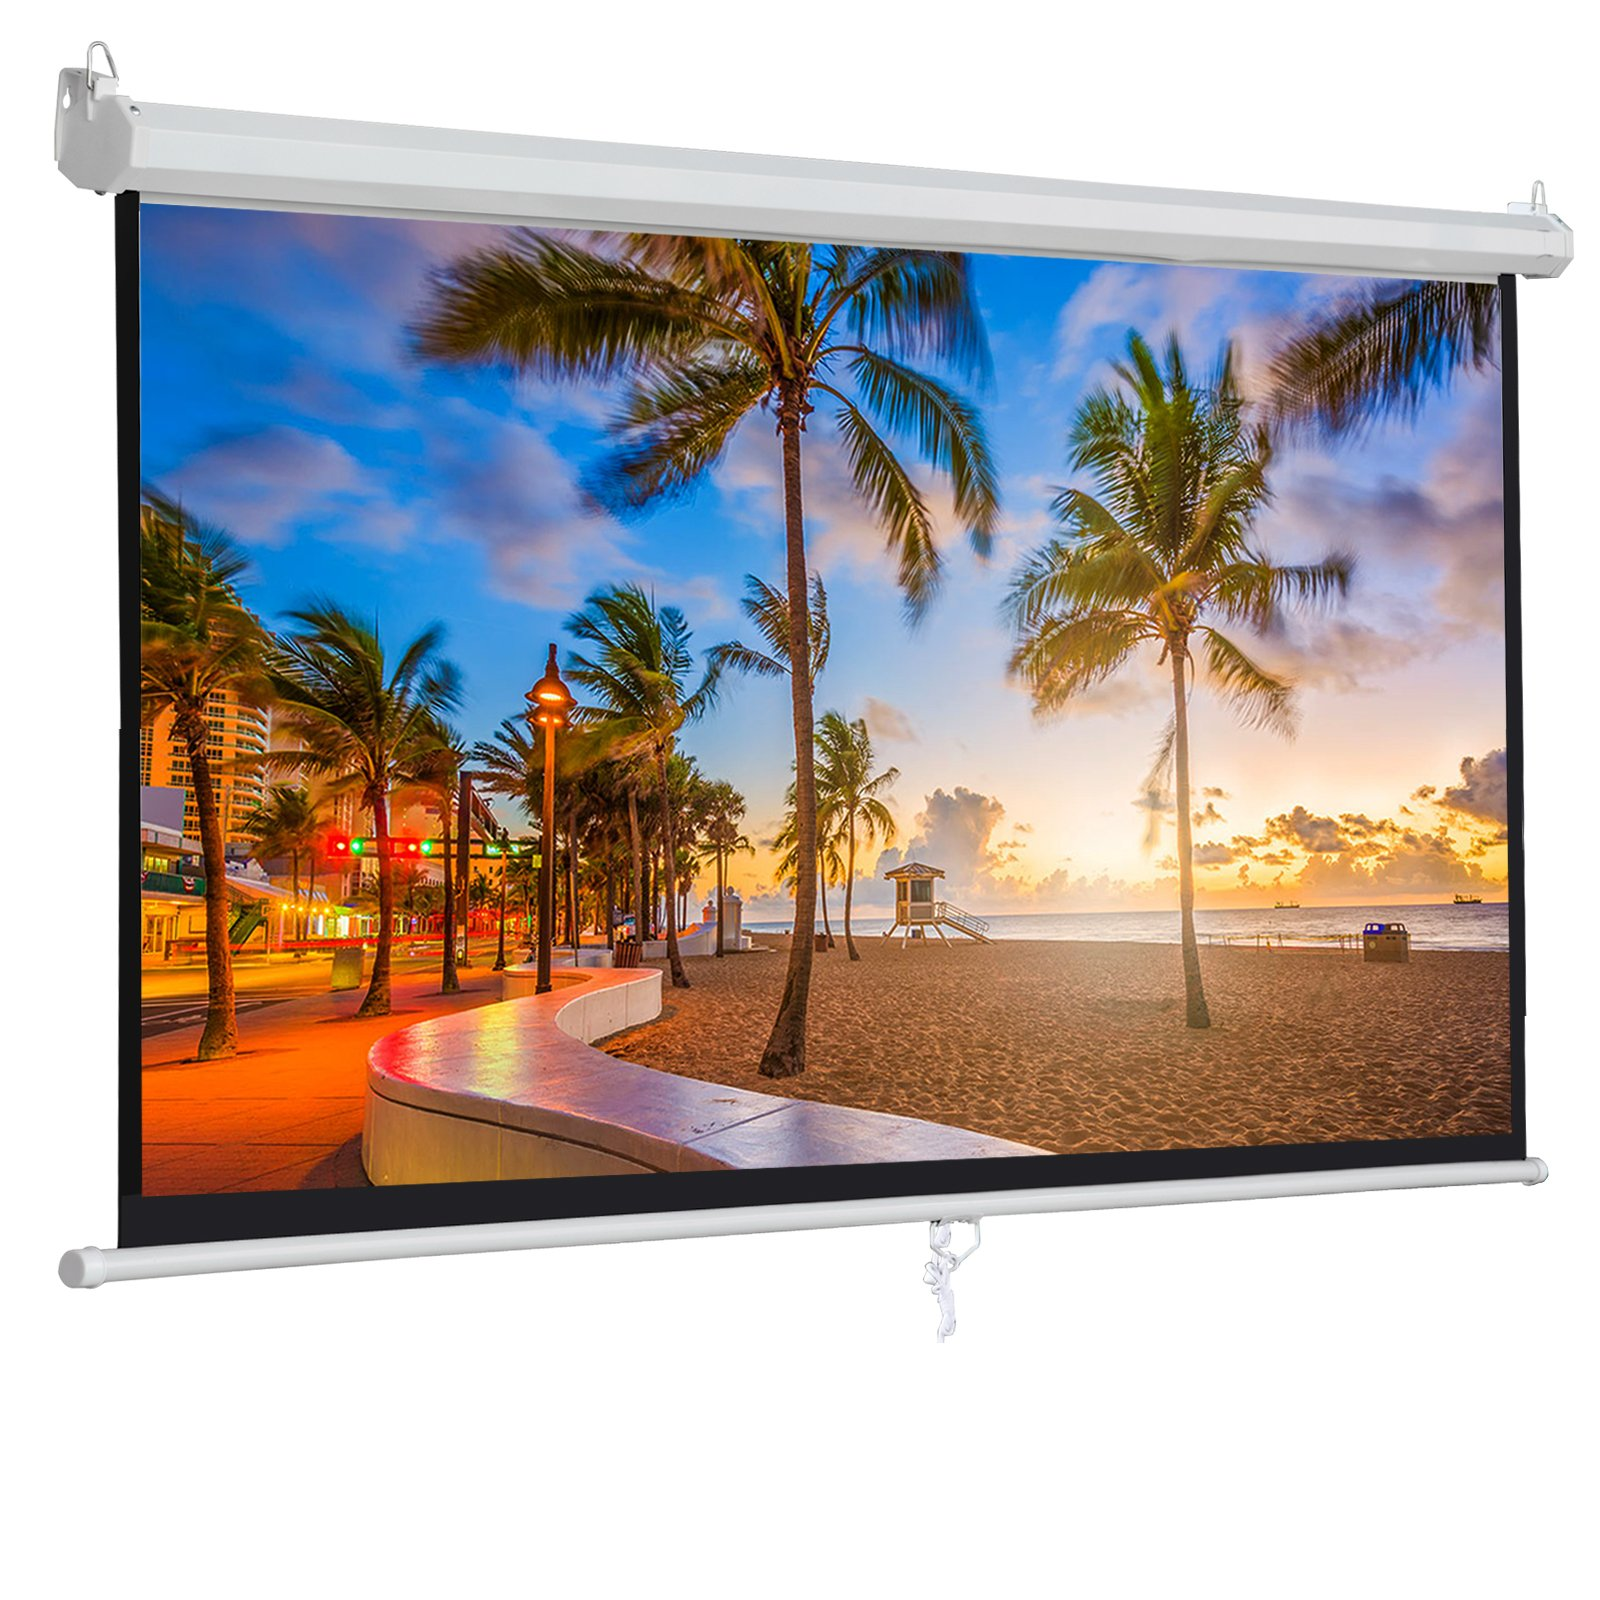 ZENY 100'' Projector Screen 16:9 HD Projection Manual Pull Down Portable Foldaway Movie Home Theater Projector Movies Outdoor Screen (100,16:9) by ZENY